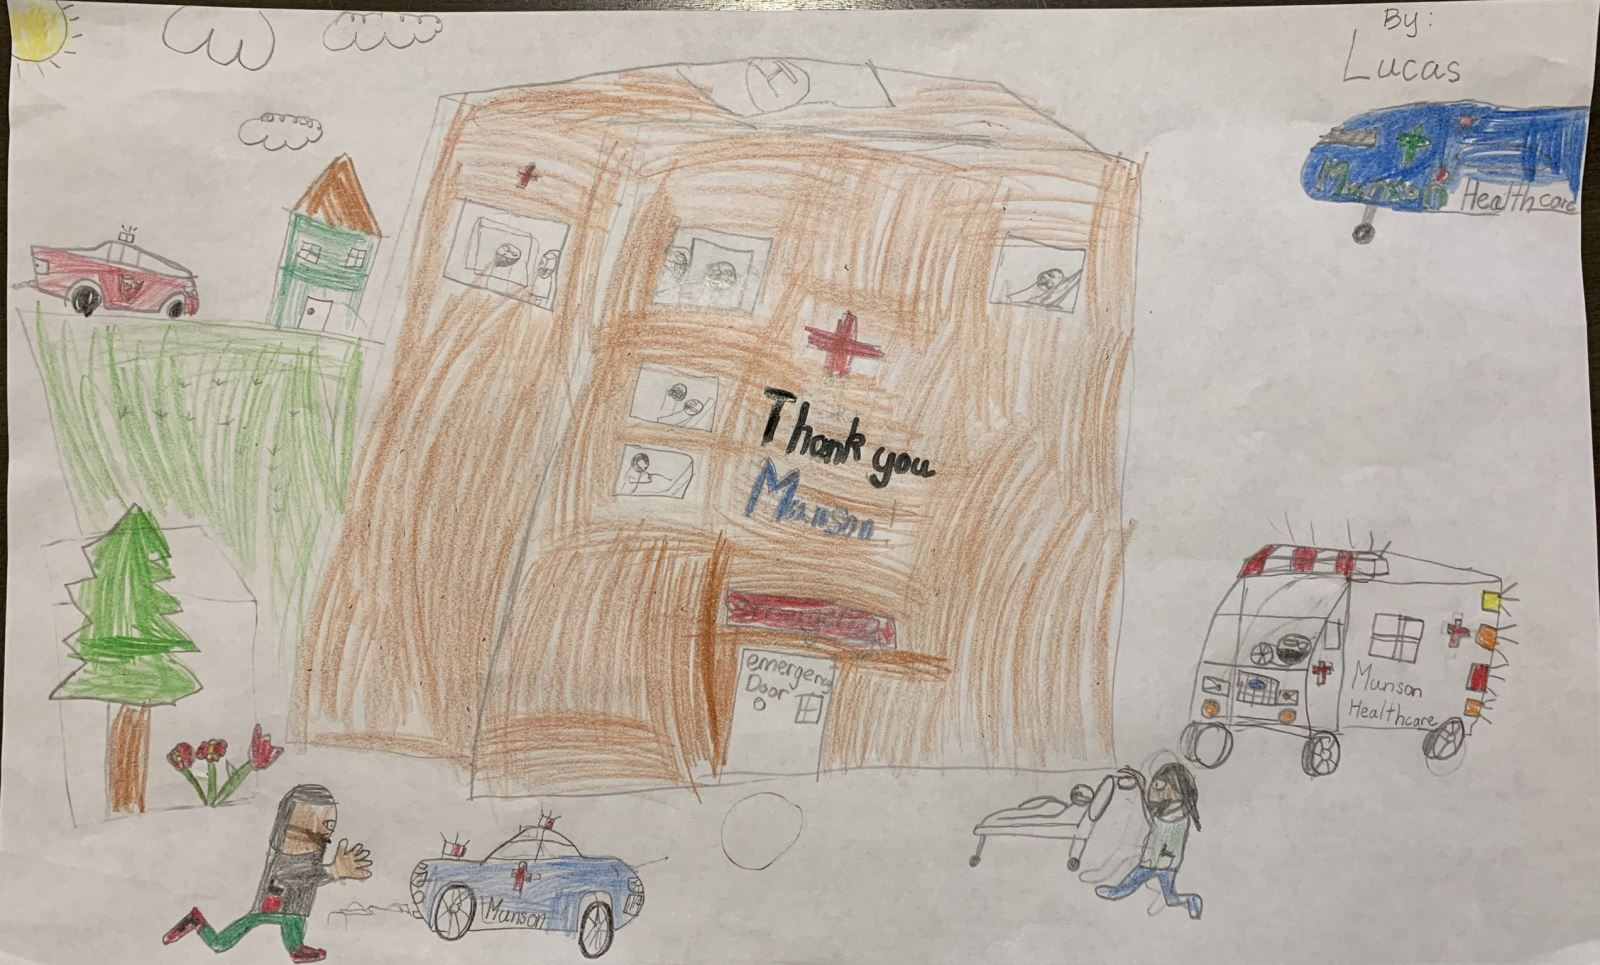 Munson Healthcare Heroes Poster Contest